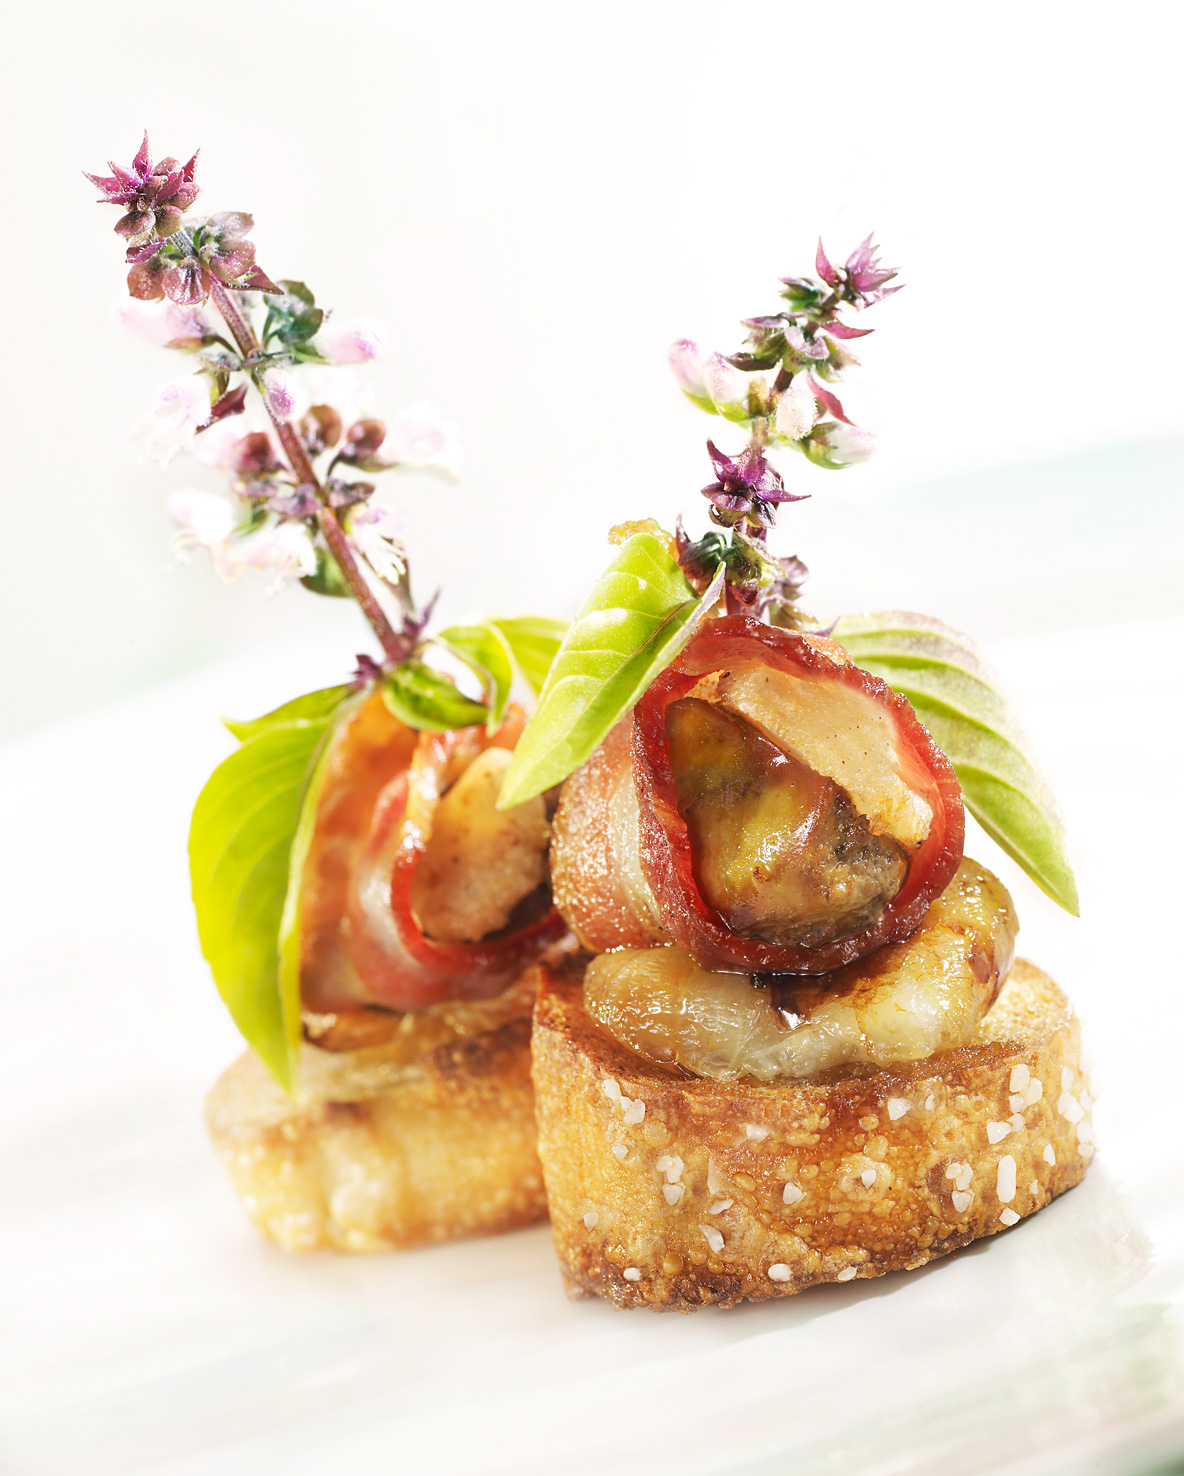 Glasshouse Assignment - David Bishop - Food Photography - Rumaki with Roasted Cipollini and Thai Basil